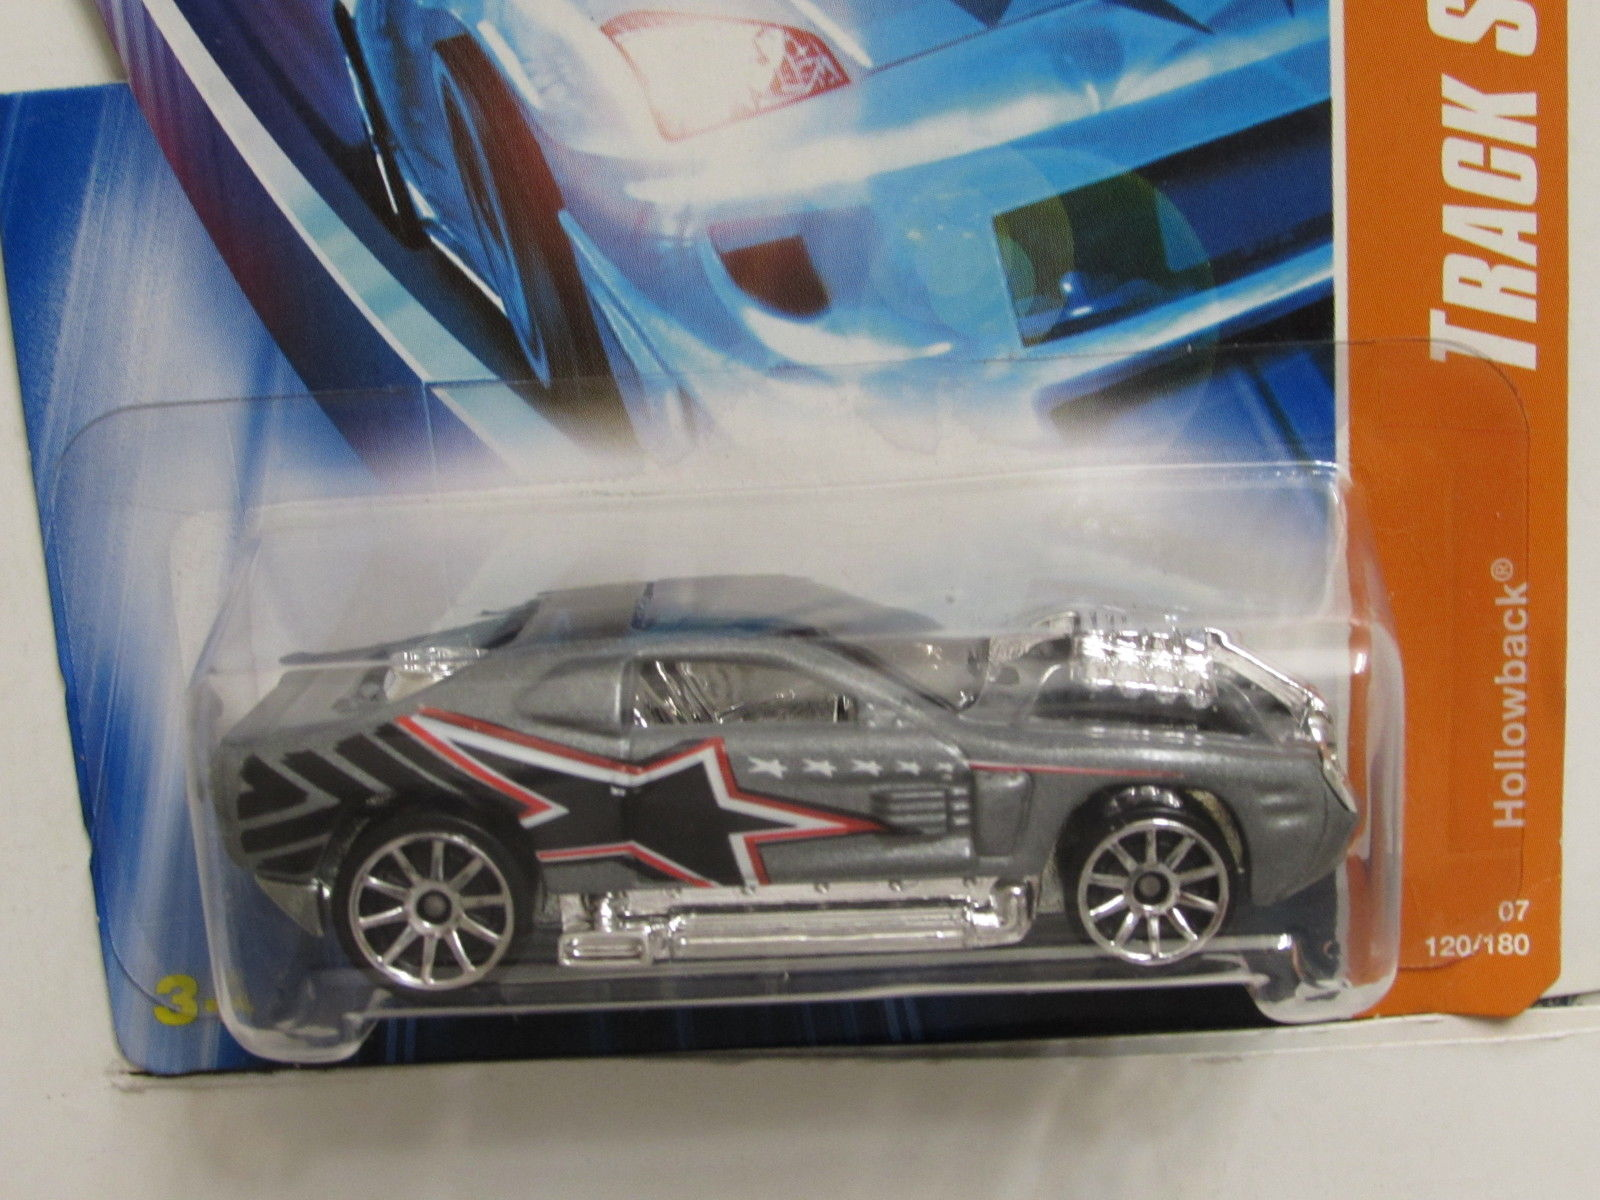 HOT WHEELS 2007 TRACK STARS HOLLOWBACK